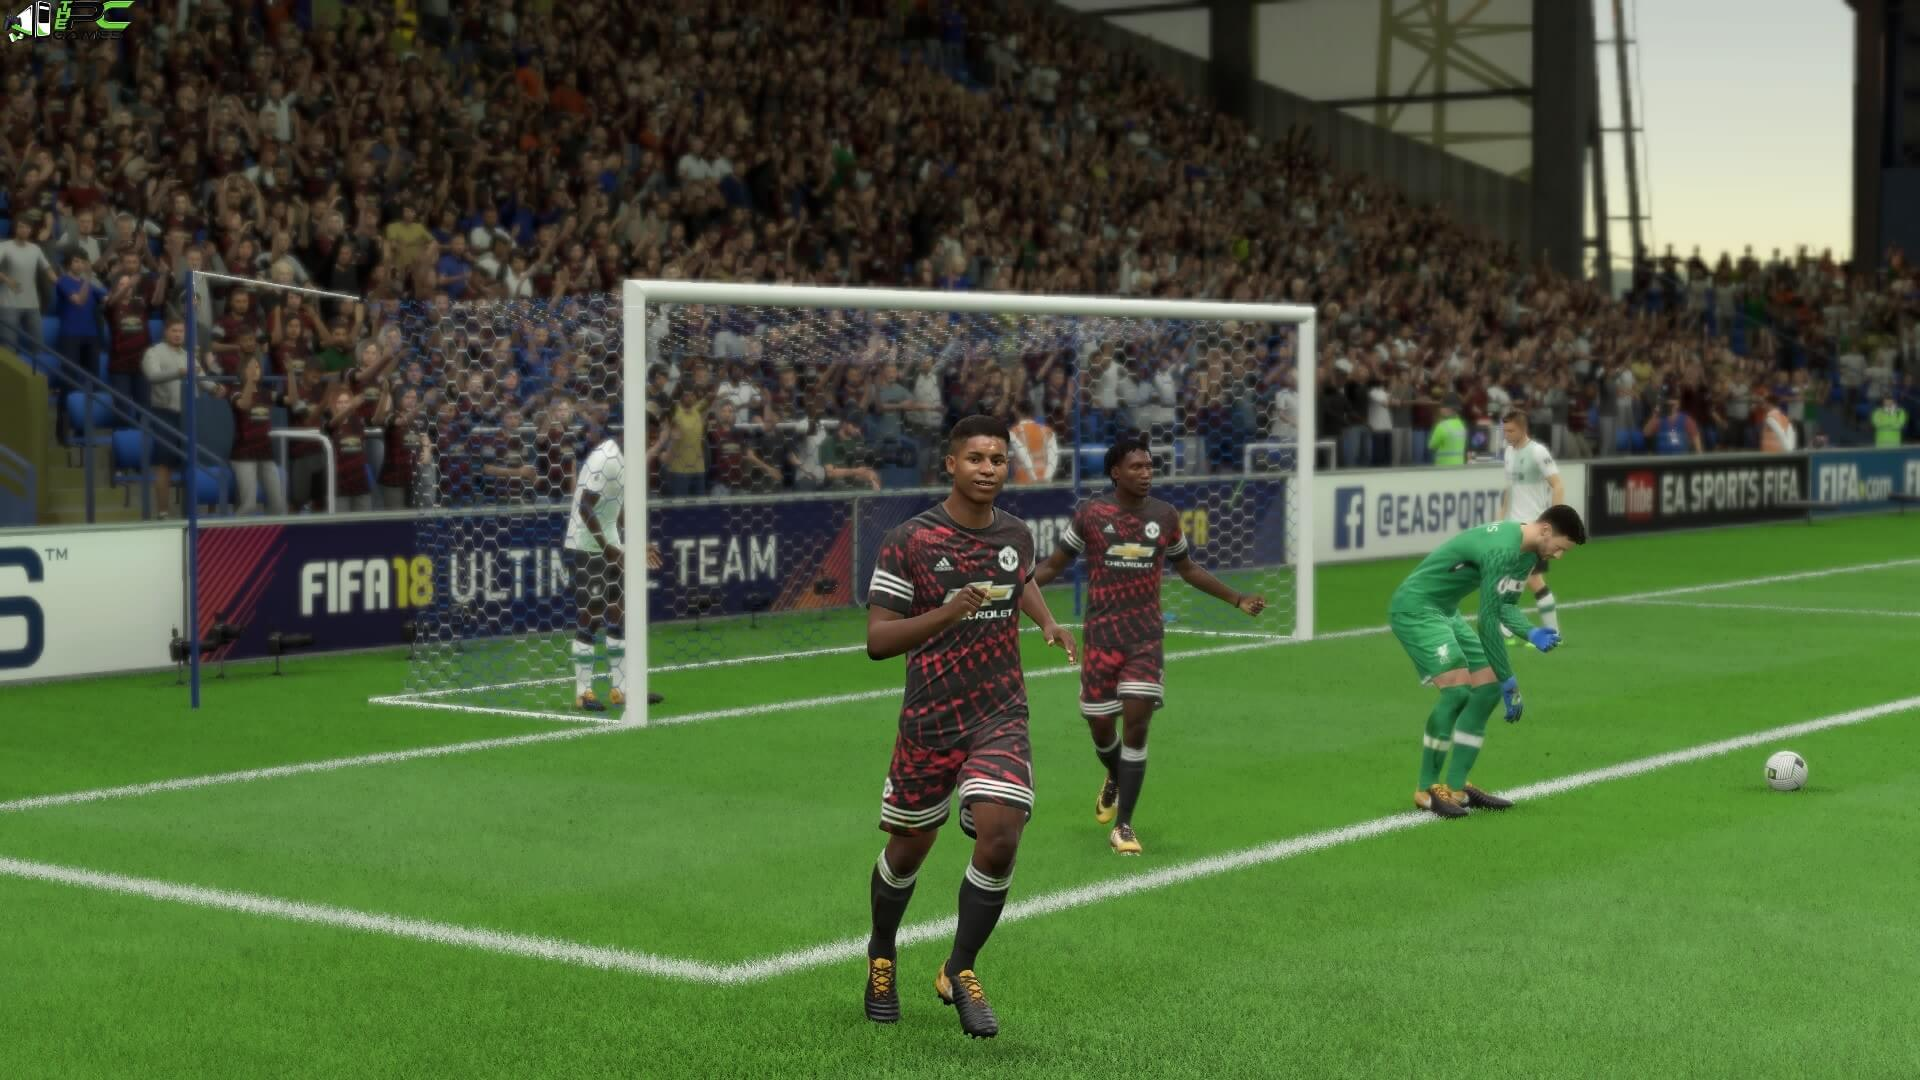 fifa 19 free download for windows